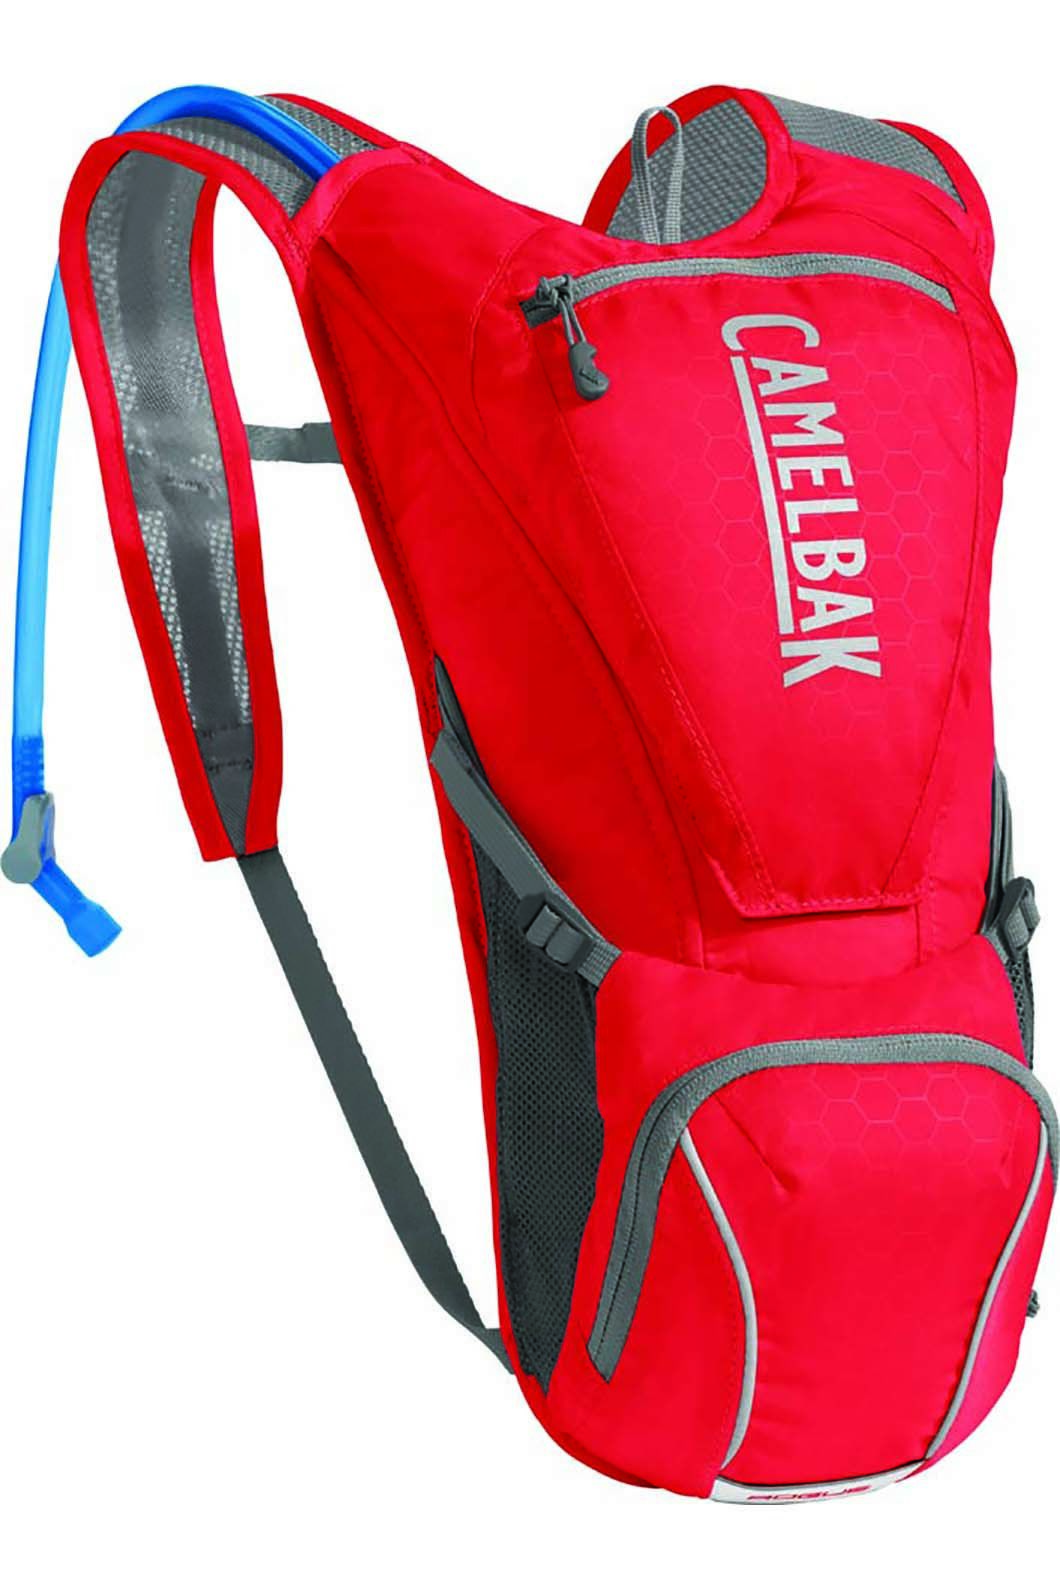 CamelBak Rogue Hydration Pack 2L, RED/SILVER, hi-res